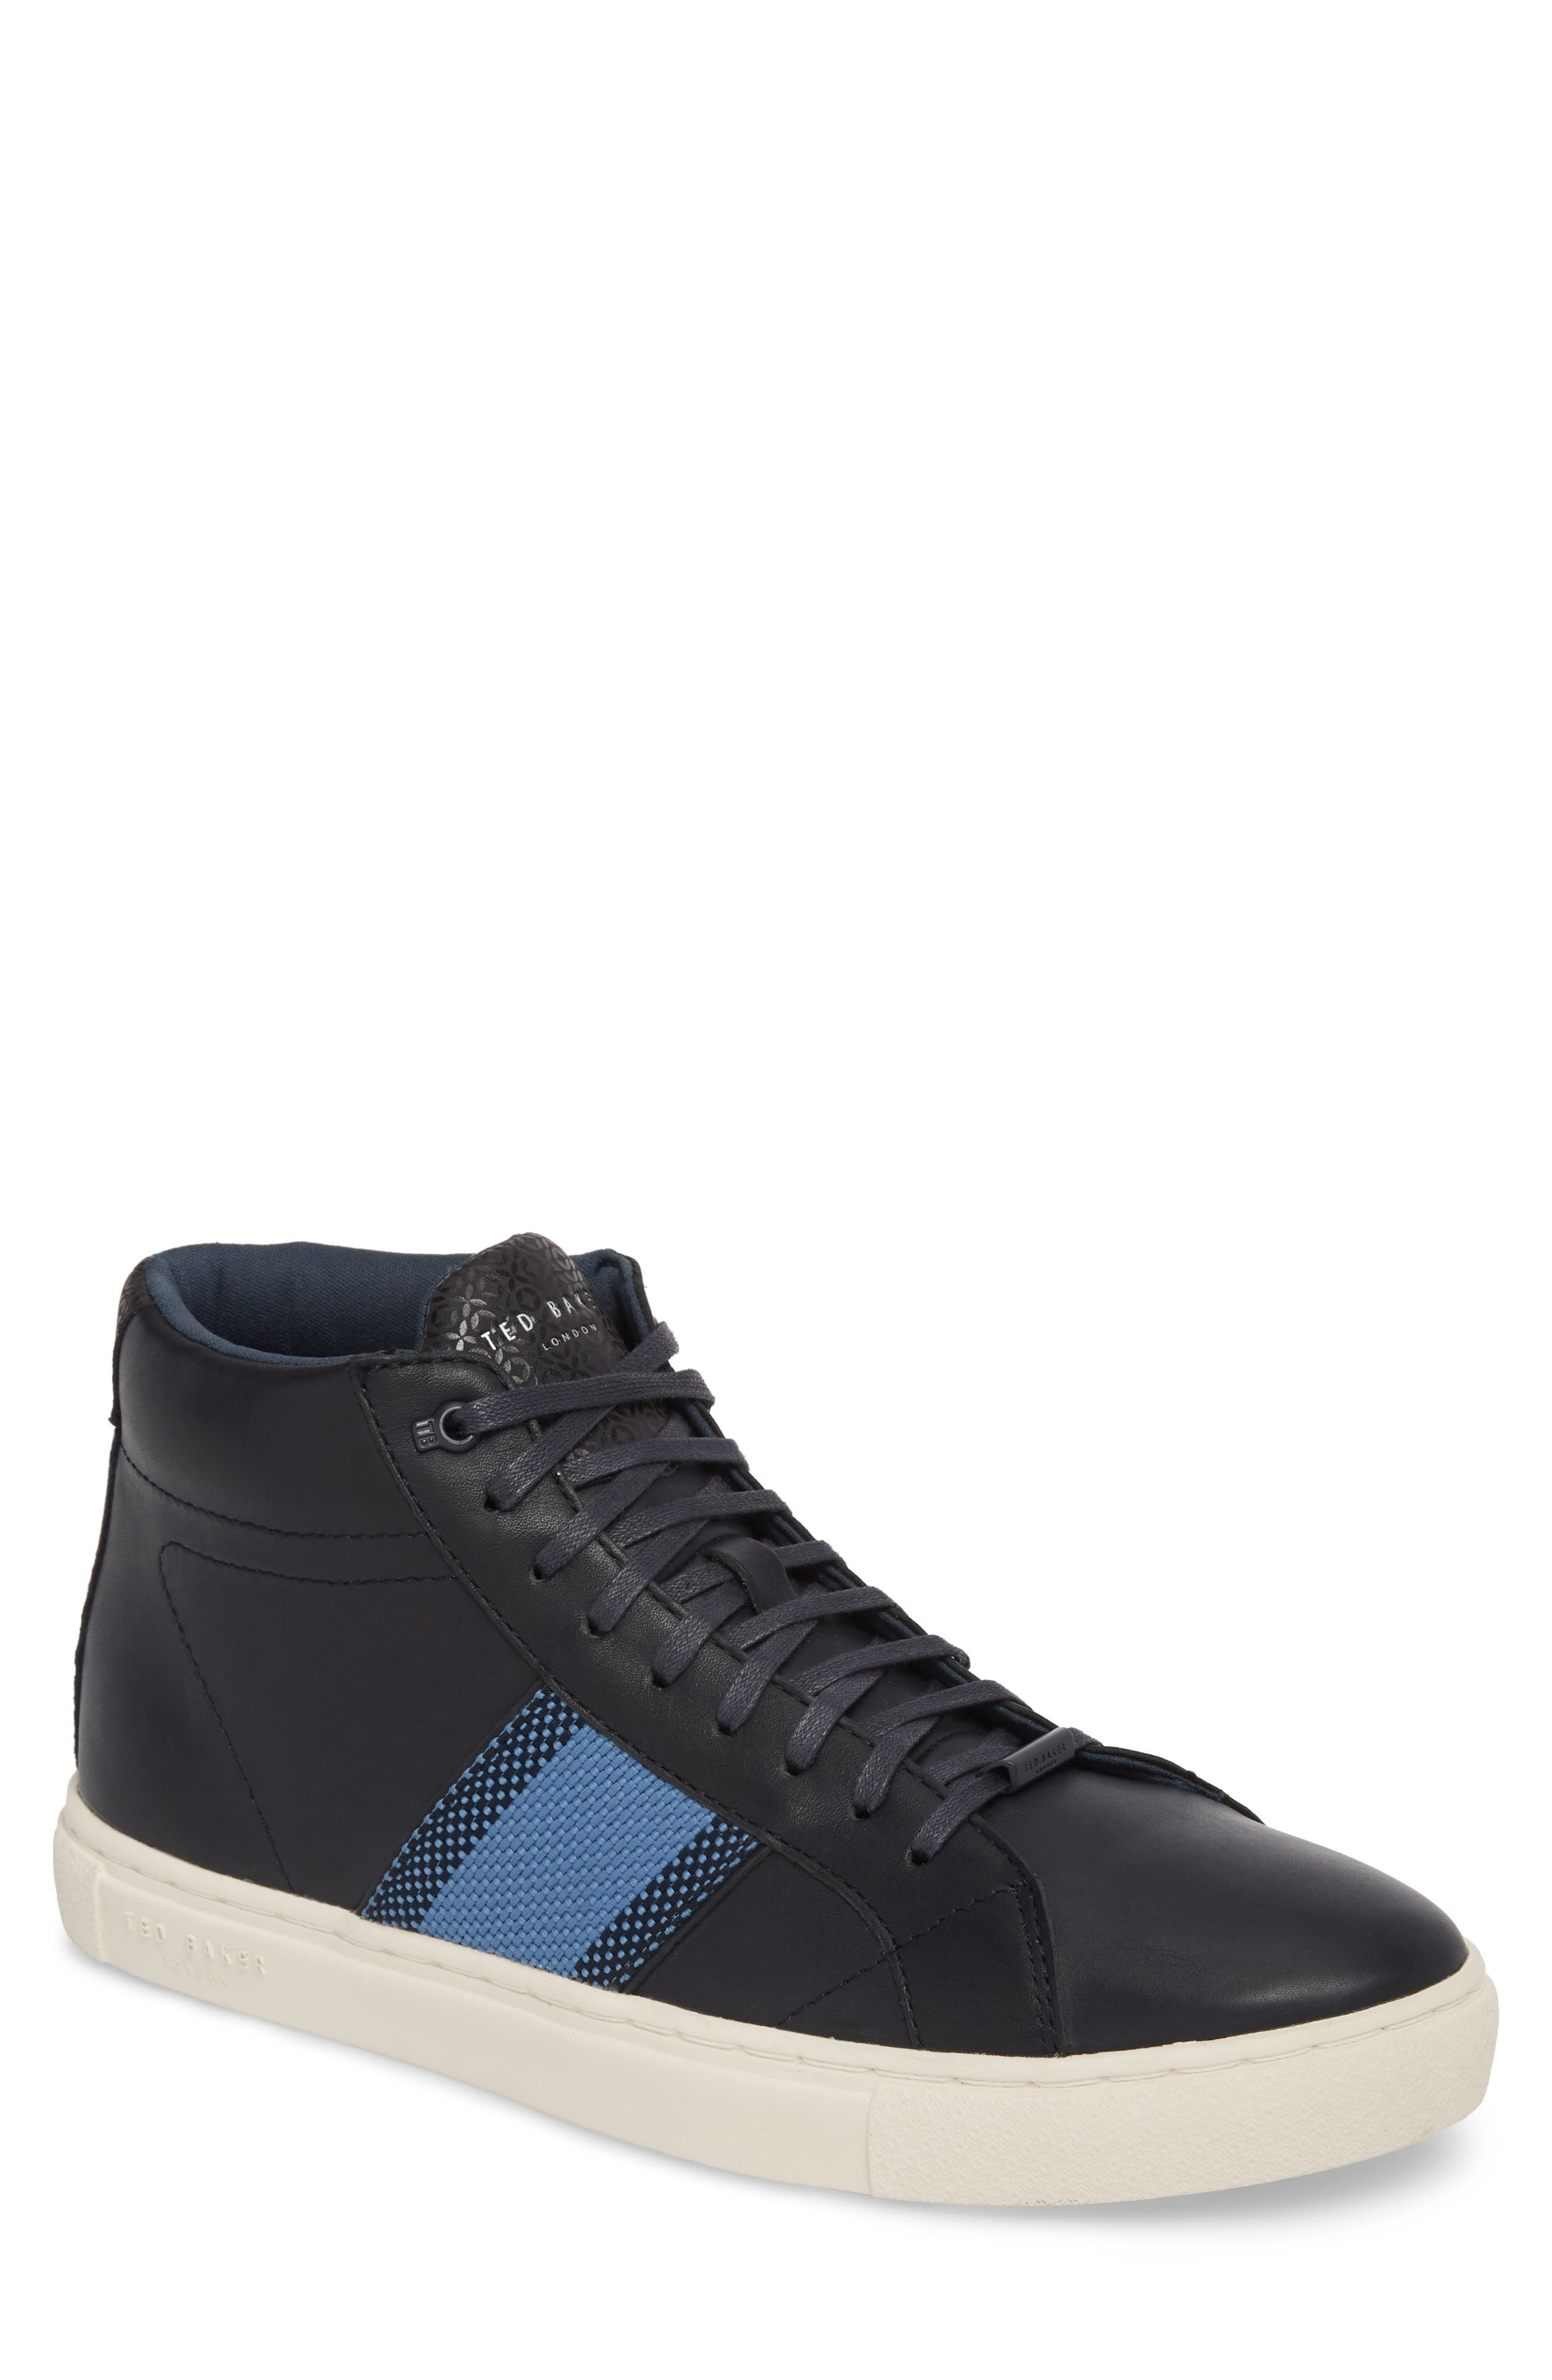 Cruuw High Top Sneaker,                         Main,                         color, Dark Blue Leather